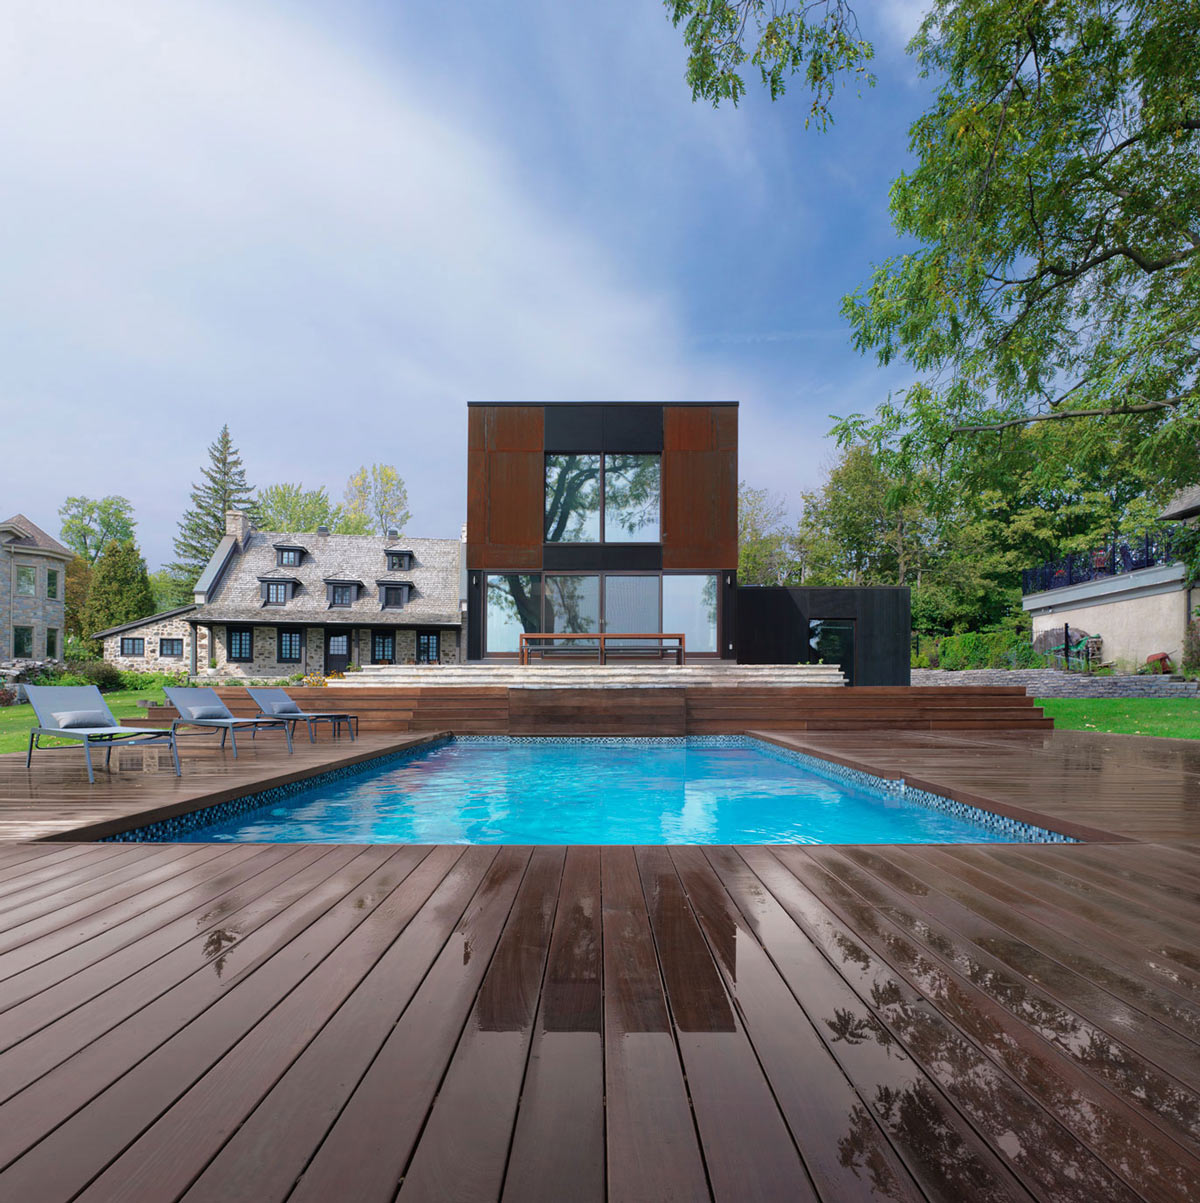 Pool, Terrace, Renovation and Addition in Dorval, Canada